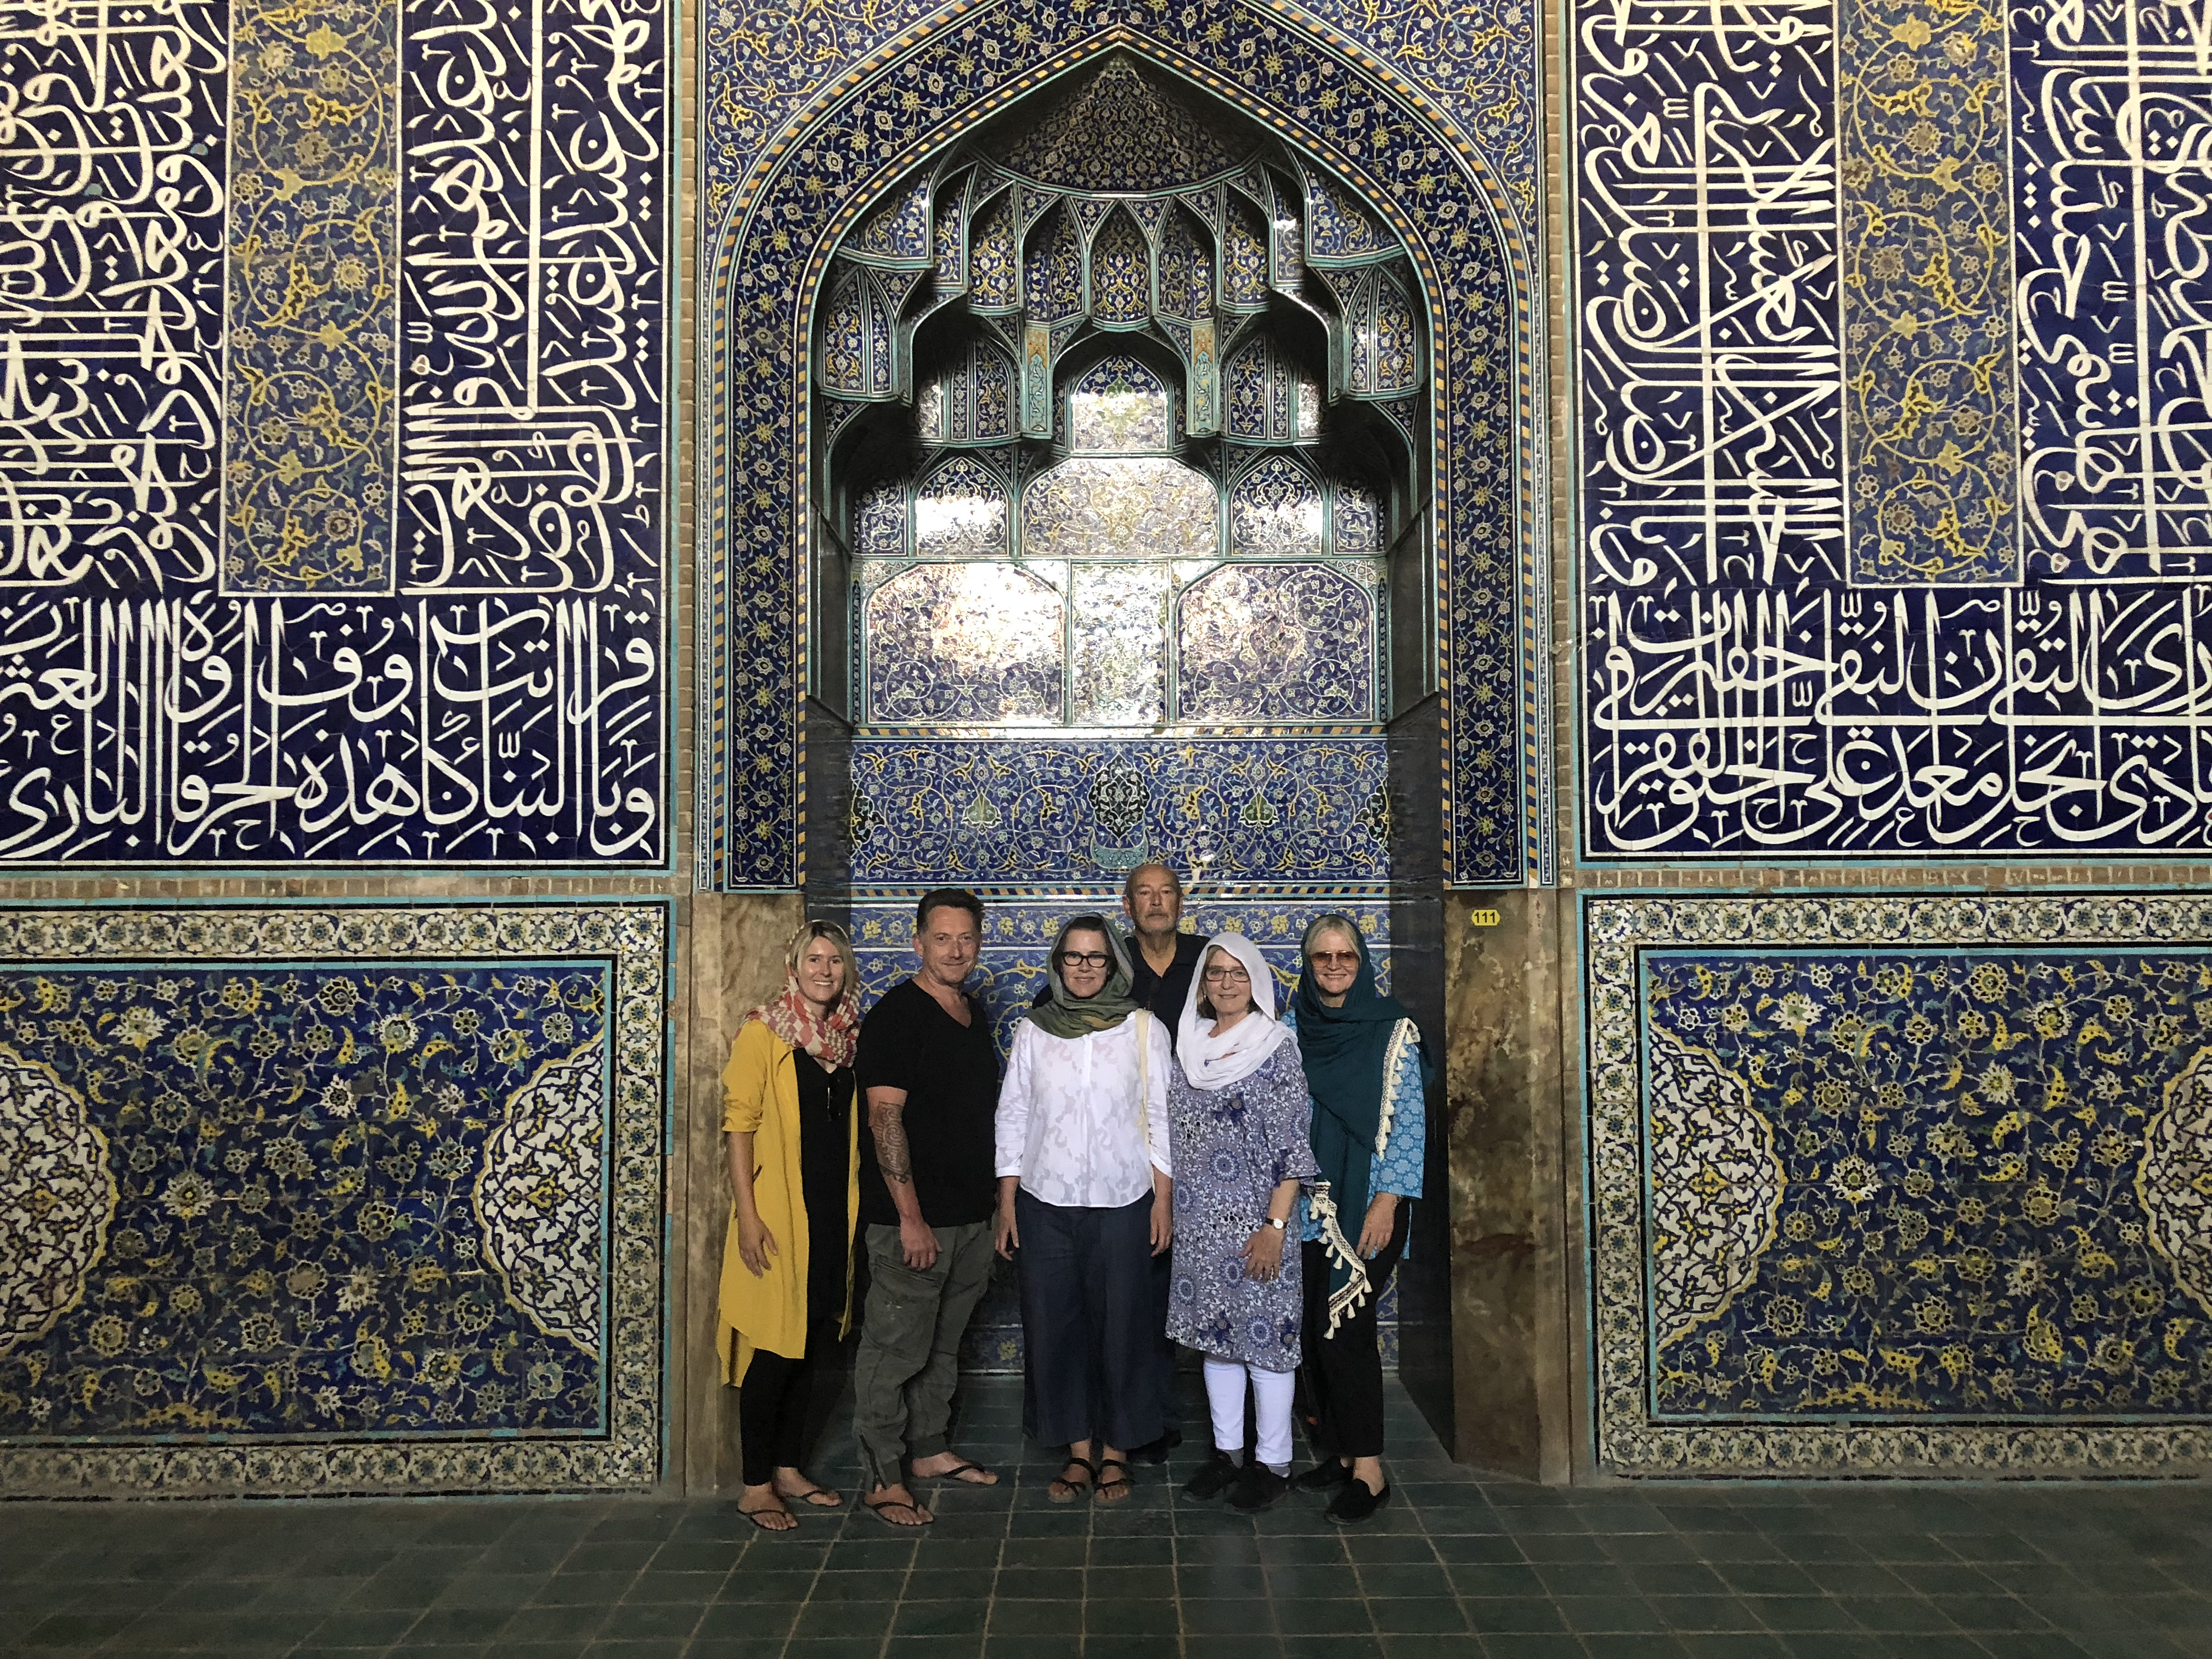 t is compulsory to wear a Hiajb in Iran | Photo Credit: Crooked Compass